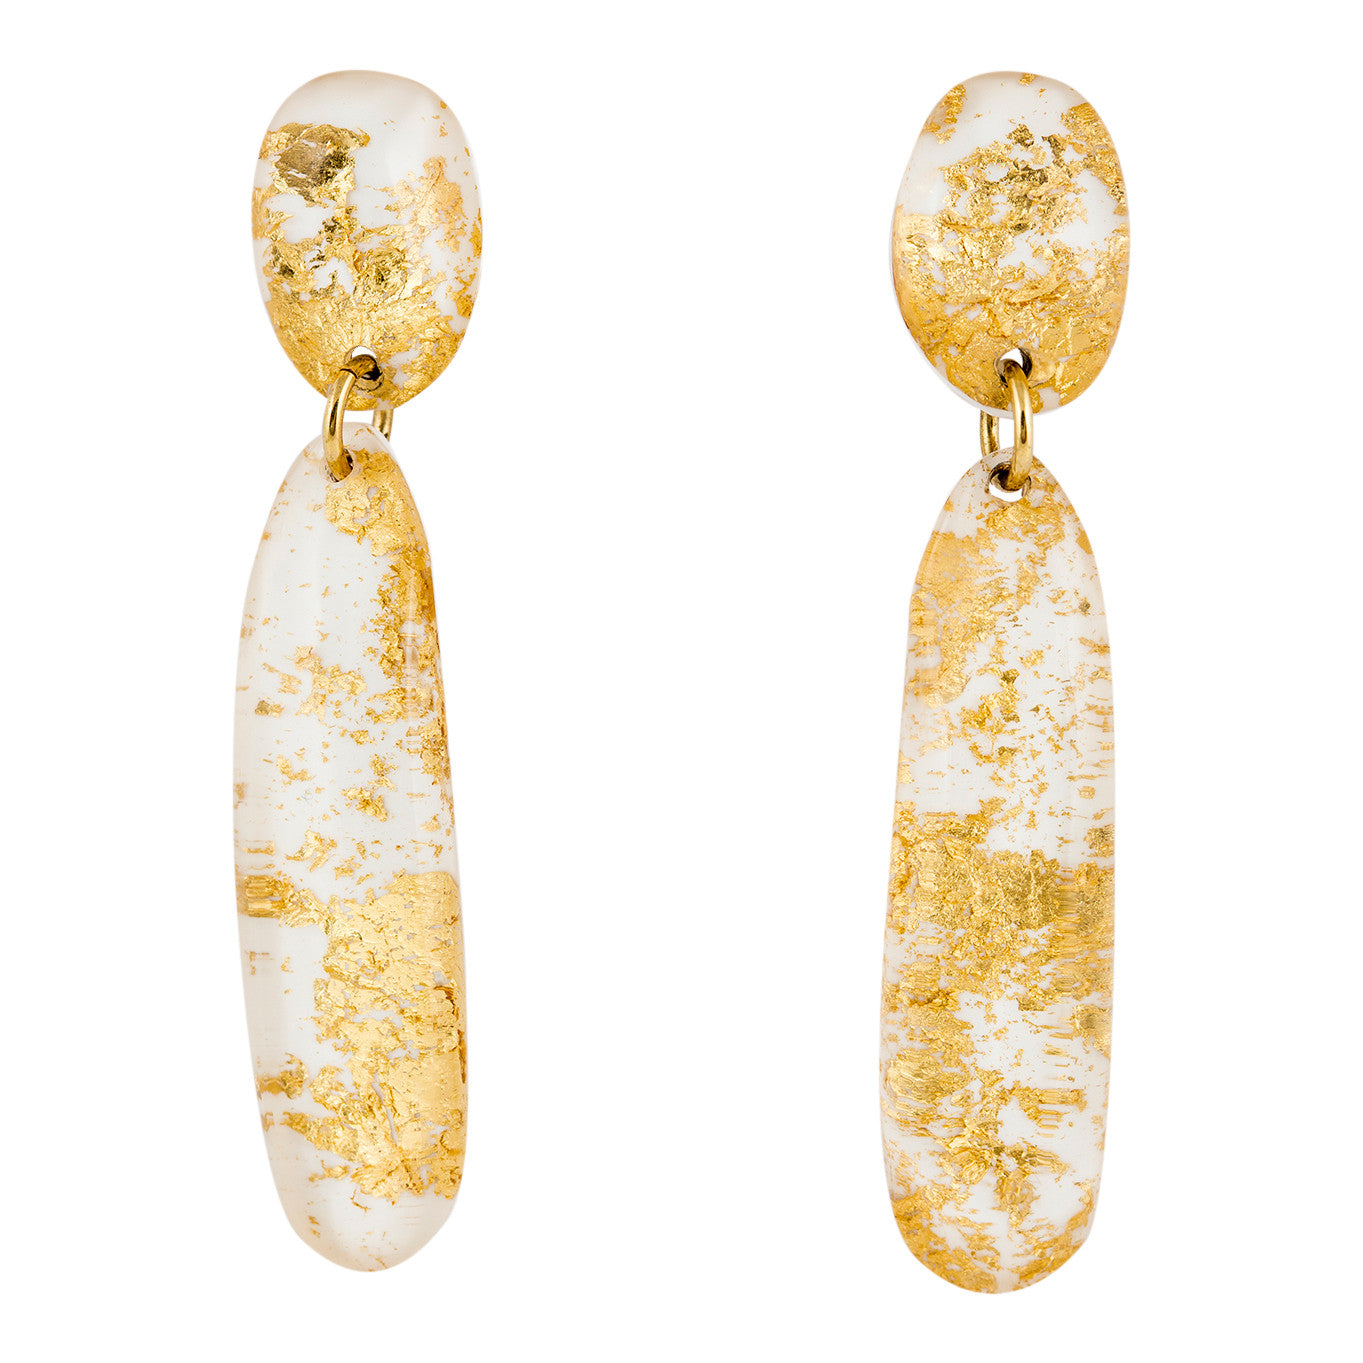 Rita's Dangling Earrings - Pure White / Les Boucles pendantes de Rita